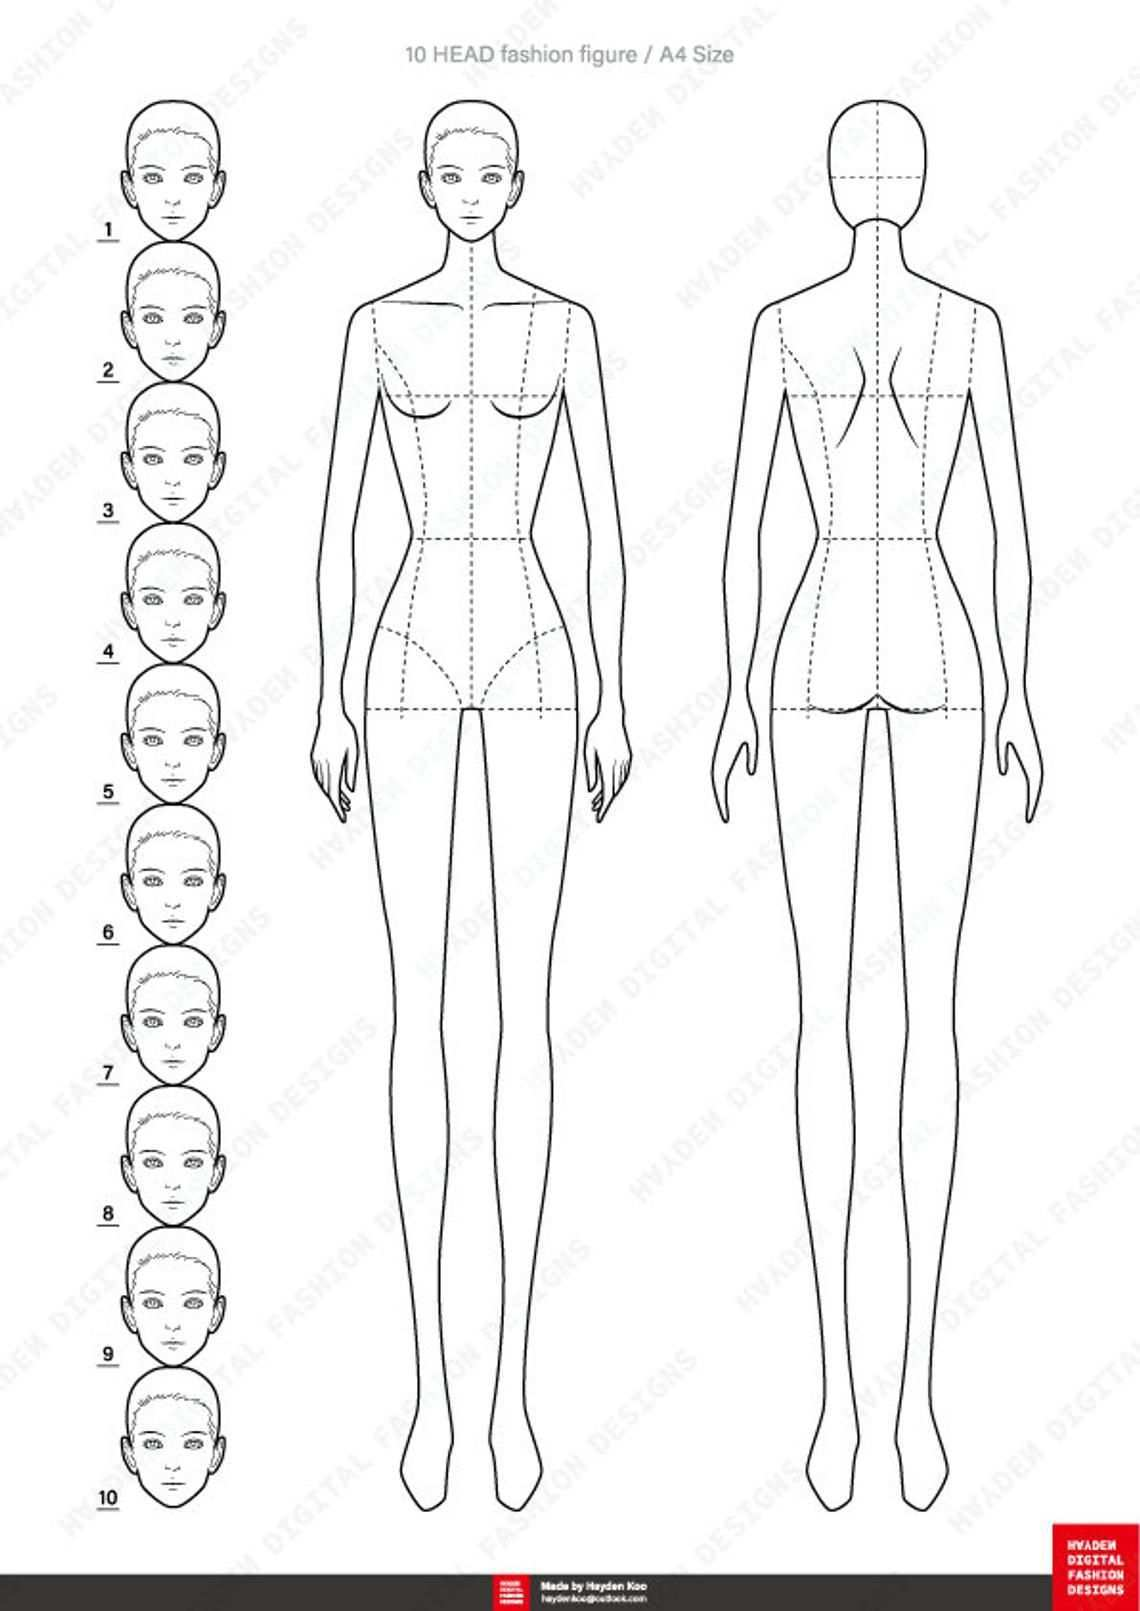 Female Fashion Figure Template 10 Head Etsy Fashion Figure Templates Fashion Figures Fashion Figure Drawing